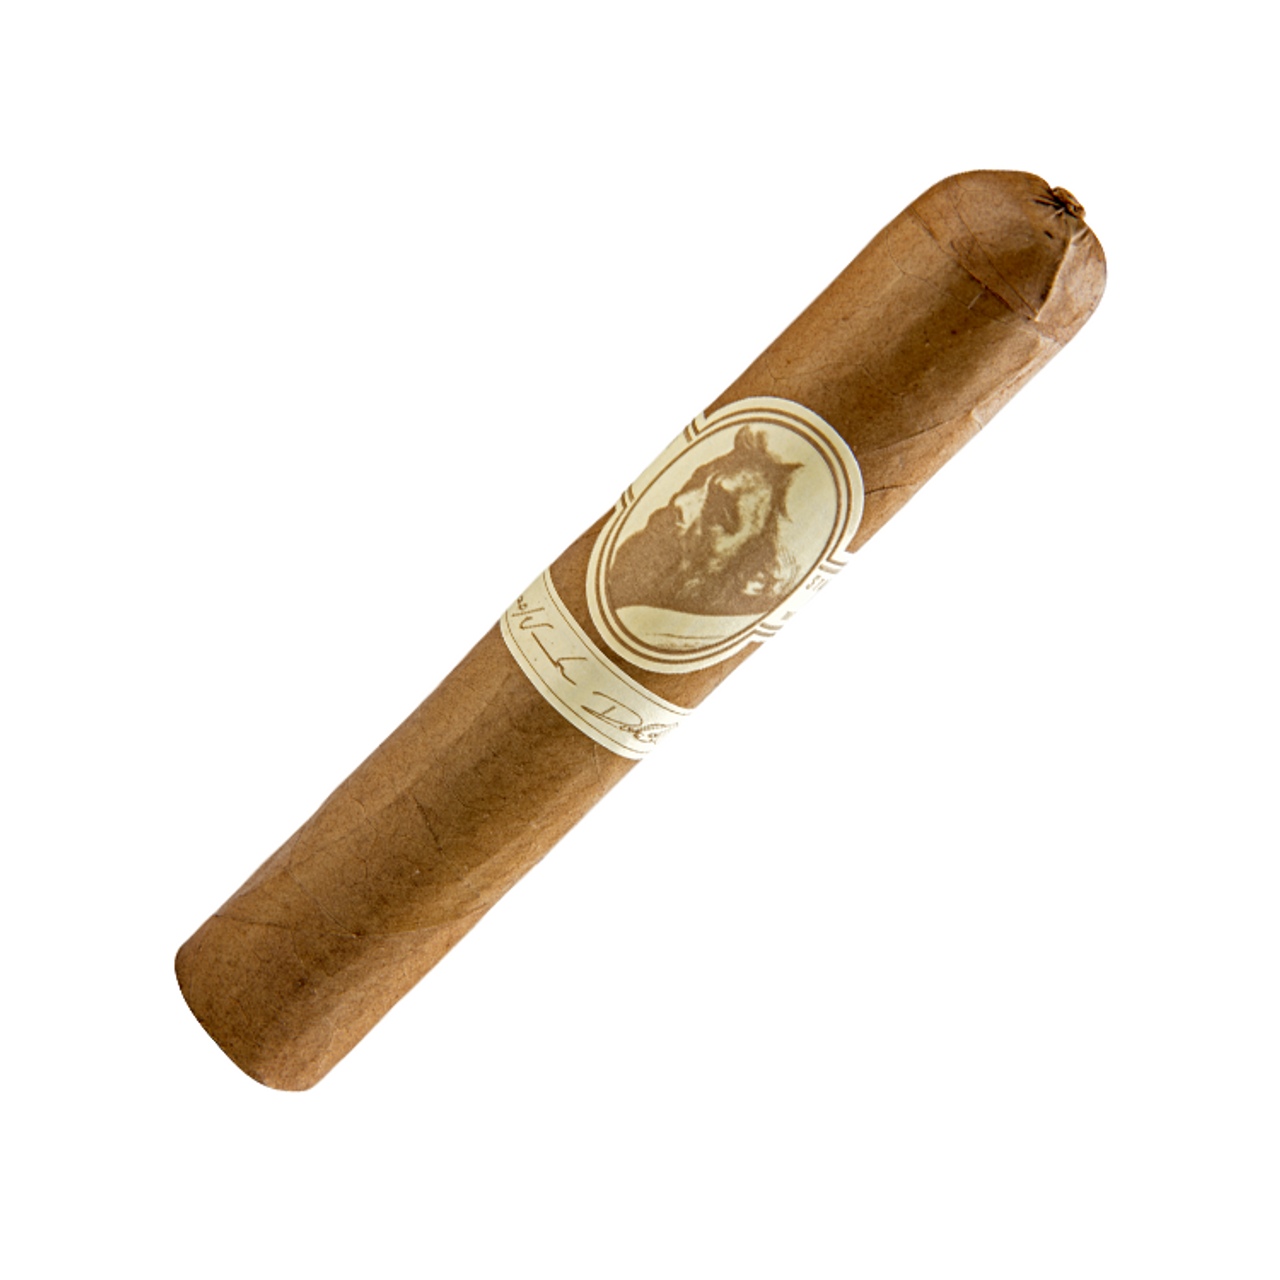 Caldwell Eastern Standard Dos Firmas Signature Super Rothschild Connecticut Cigars - 4.75 x 52 (Box of 20)